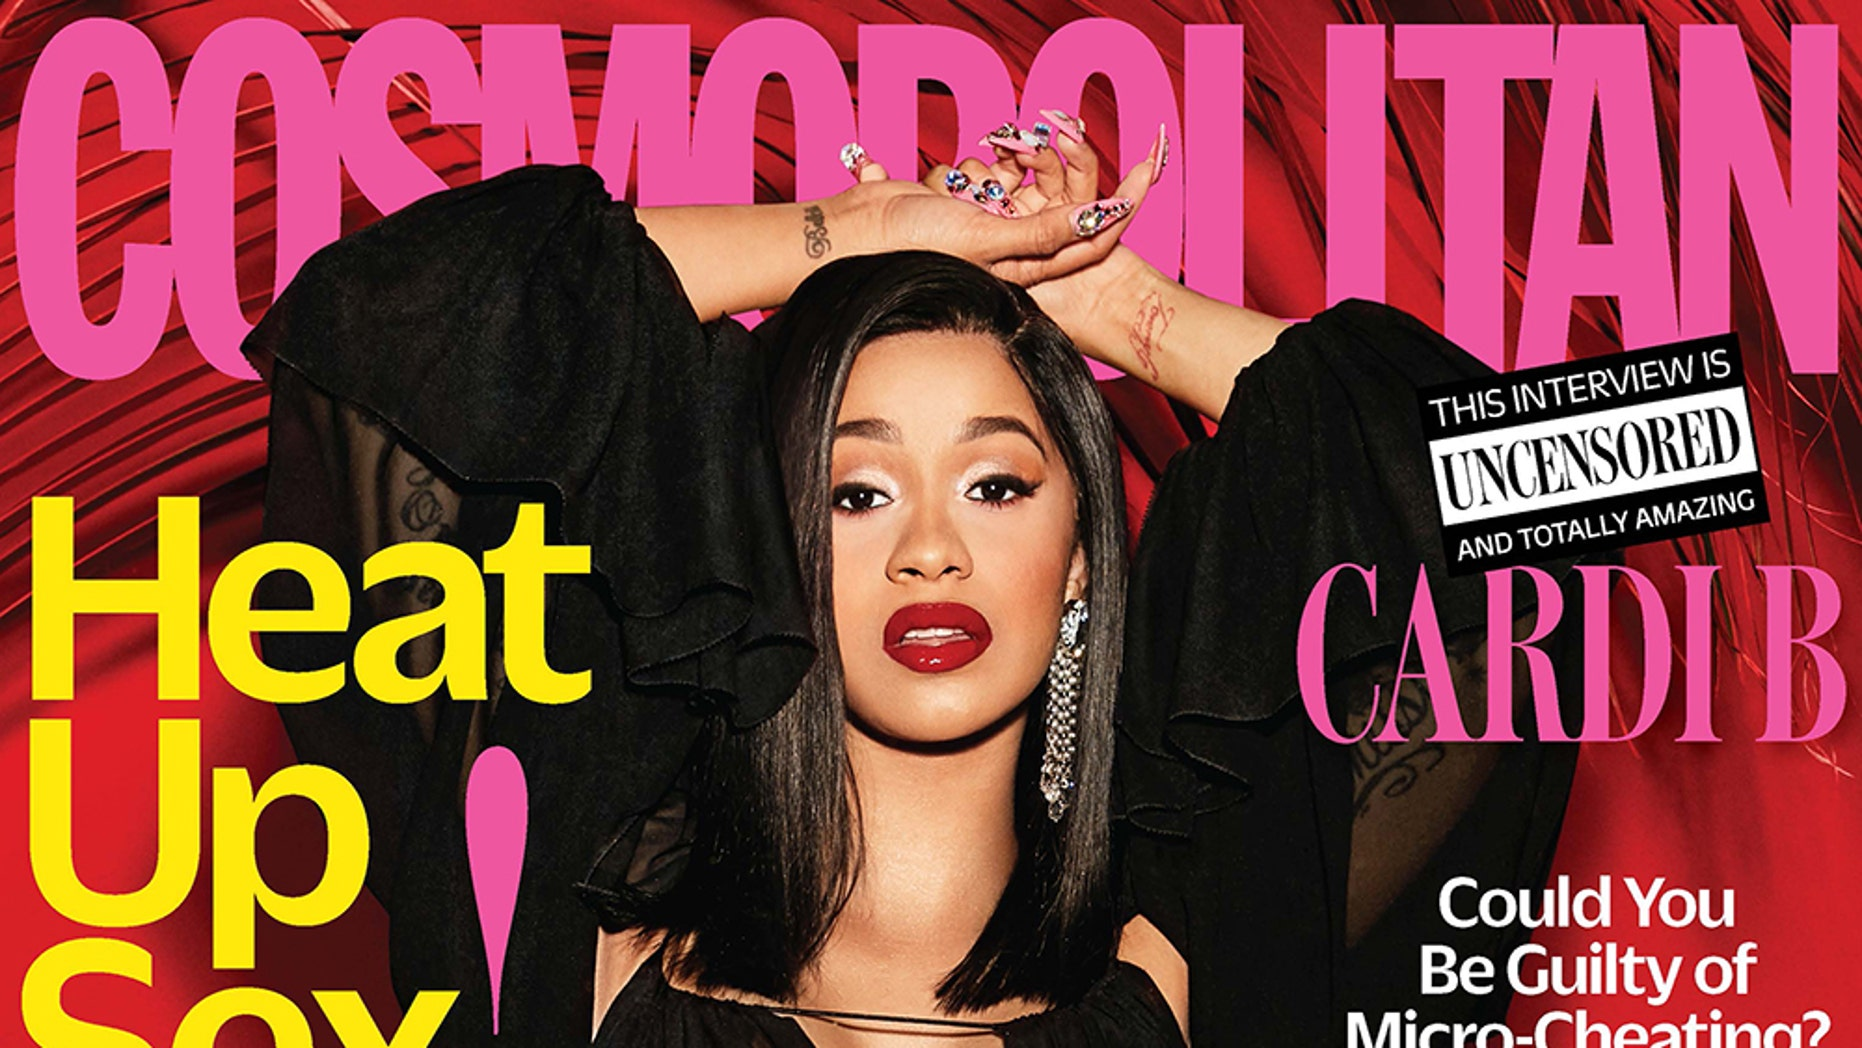 Cardi B is on the cover of Cosmopolitan's April 2018 issue.